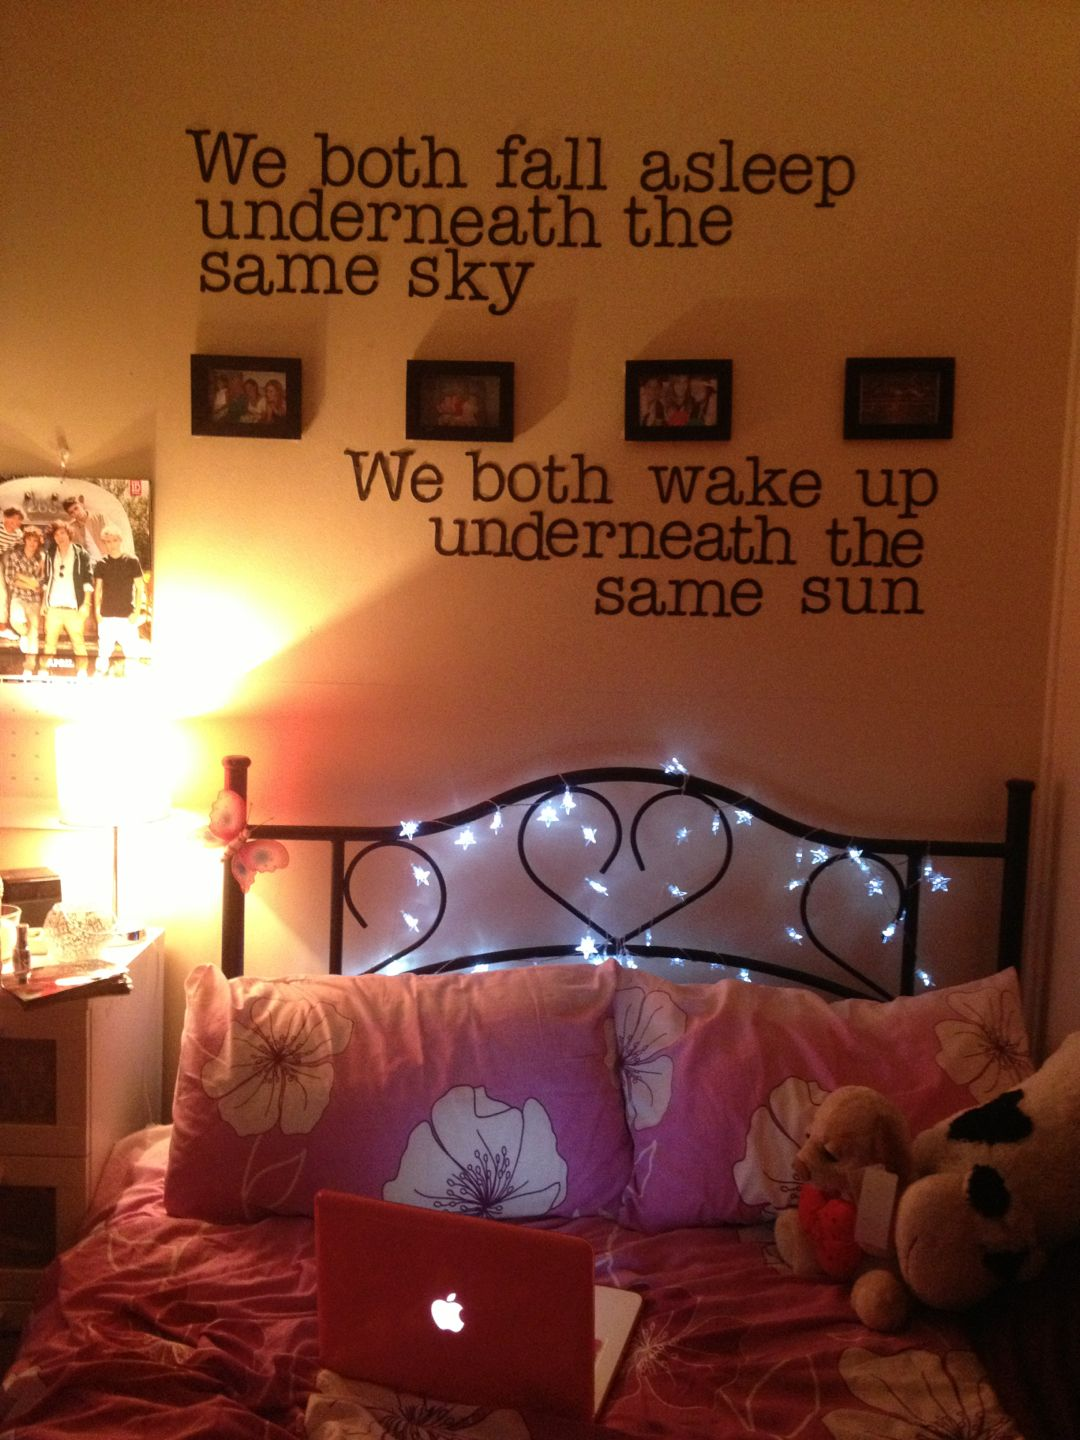 5sos Song Lyrics on wall. 5sos Song Lyrics on wall   Home   Pinterest   5sos songs  5SOS and